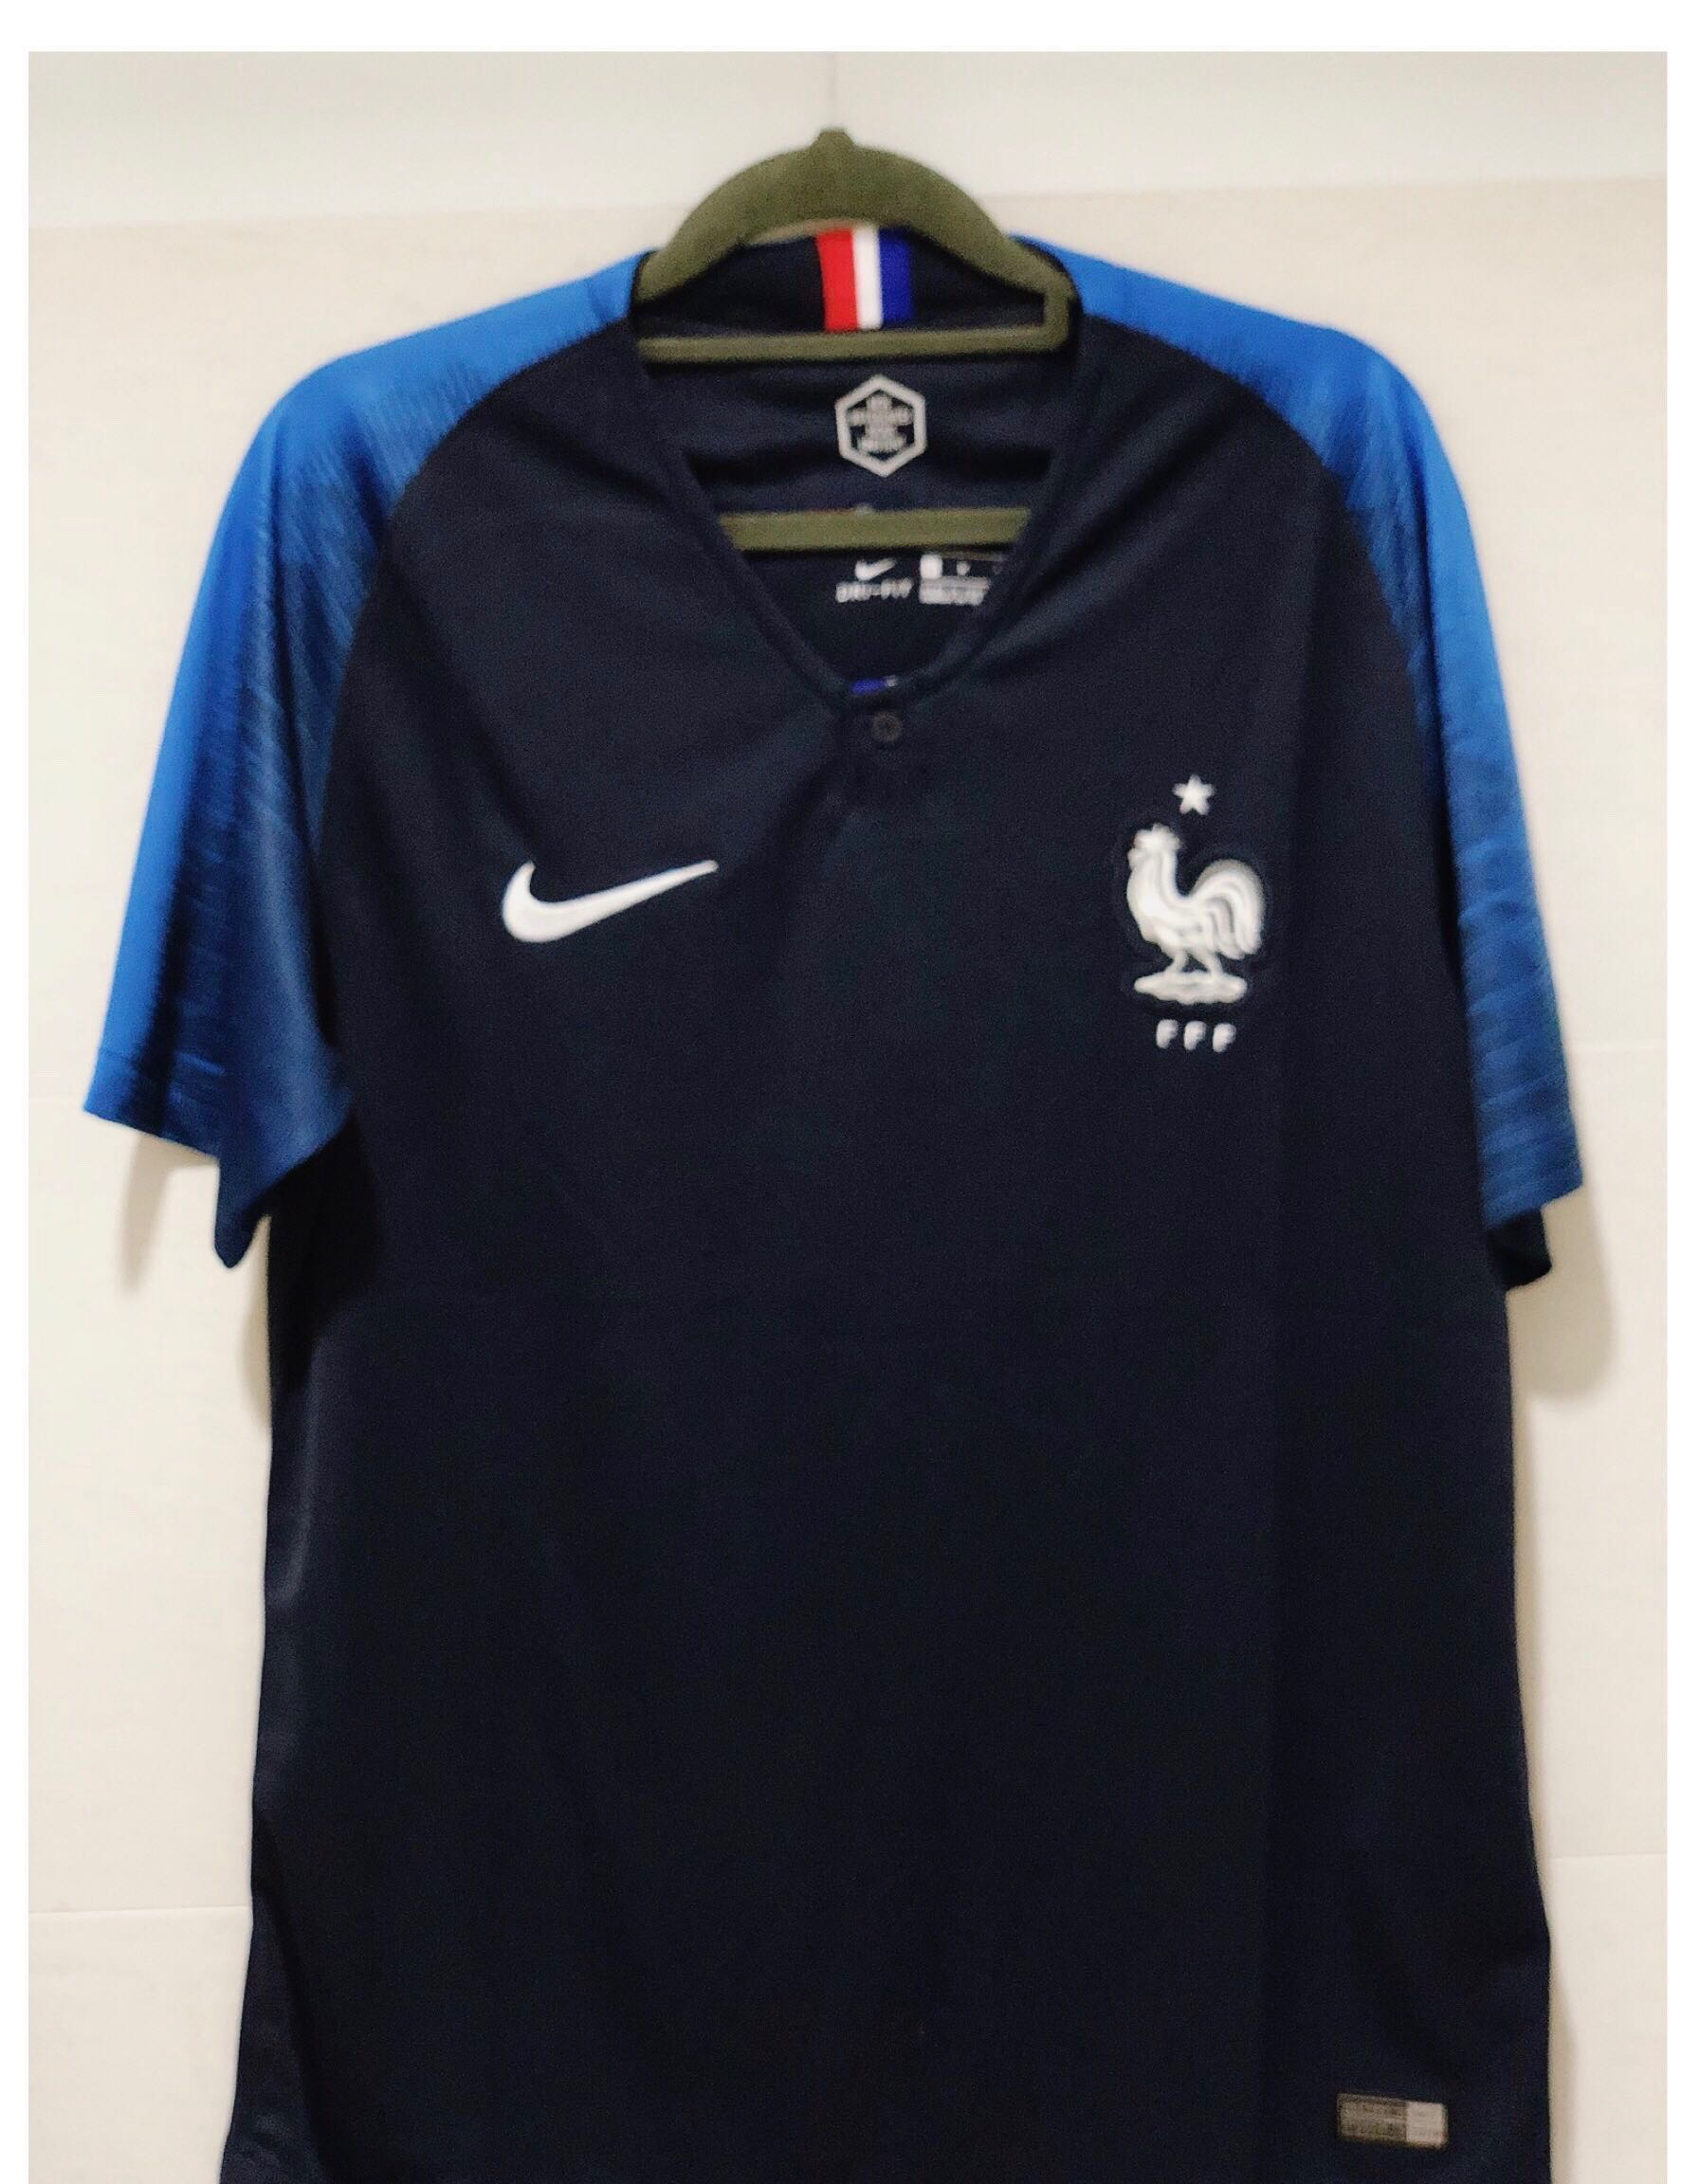 quality design c89ab f7b46 France Home 2018 World Cup